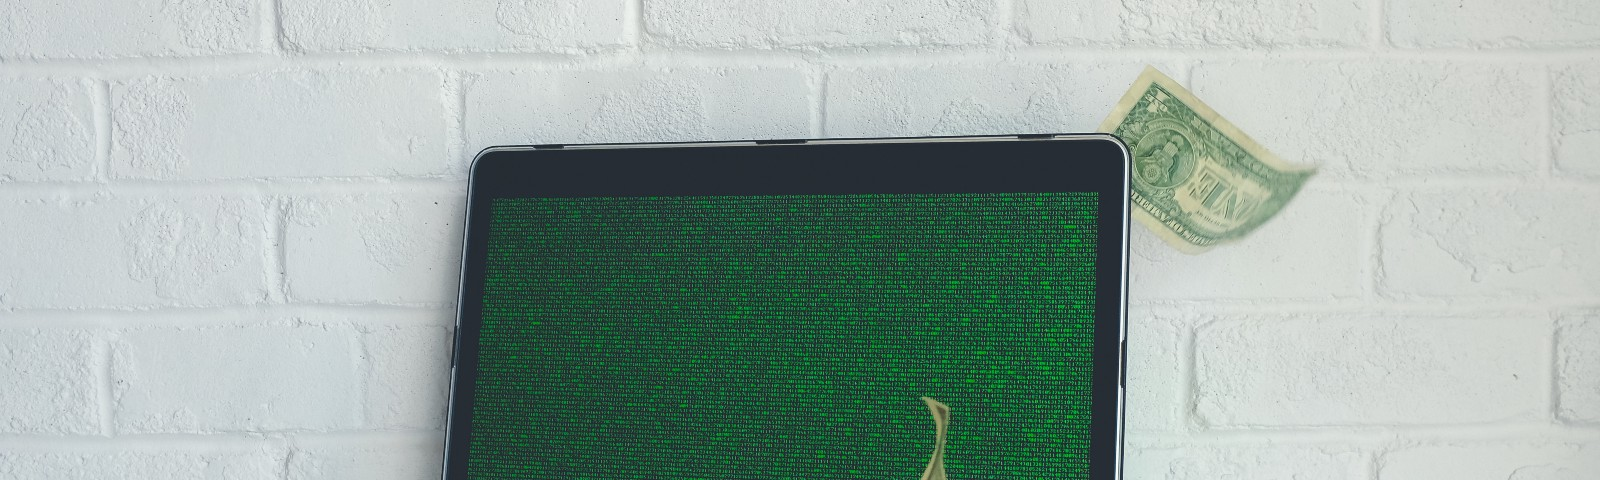 A few dollar bills floating around a laptop with a screen covered in green code.